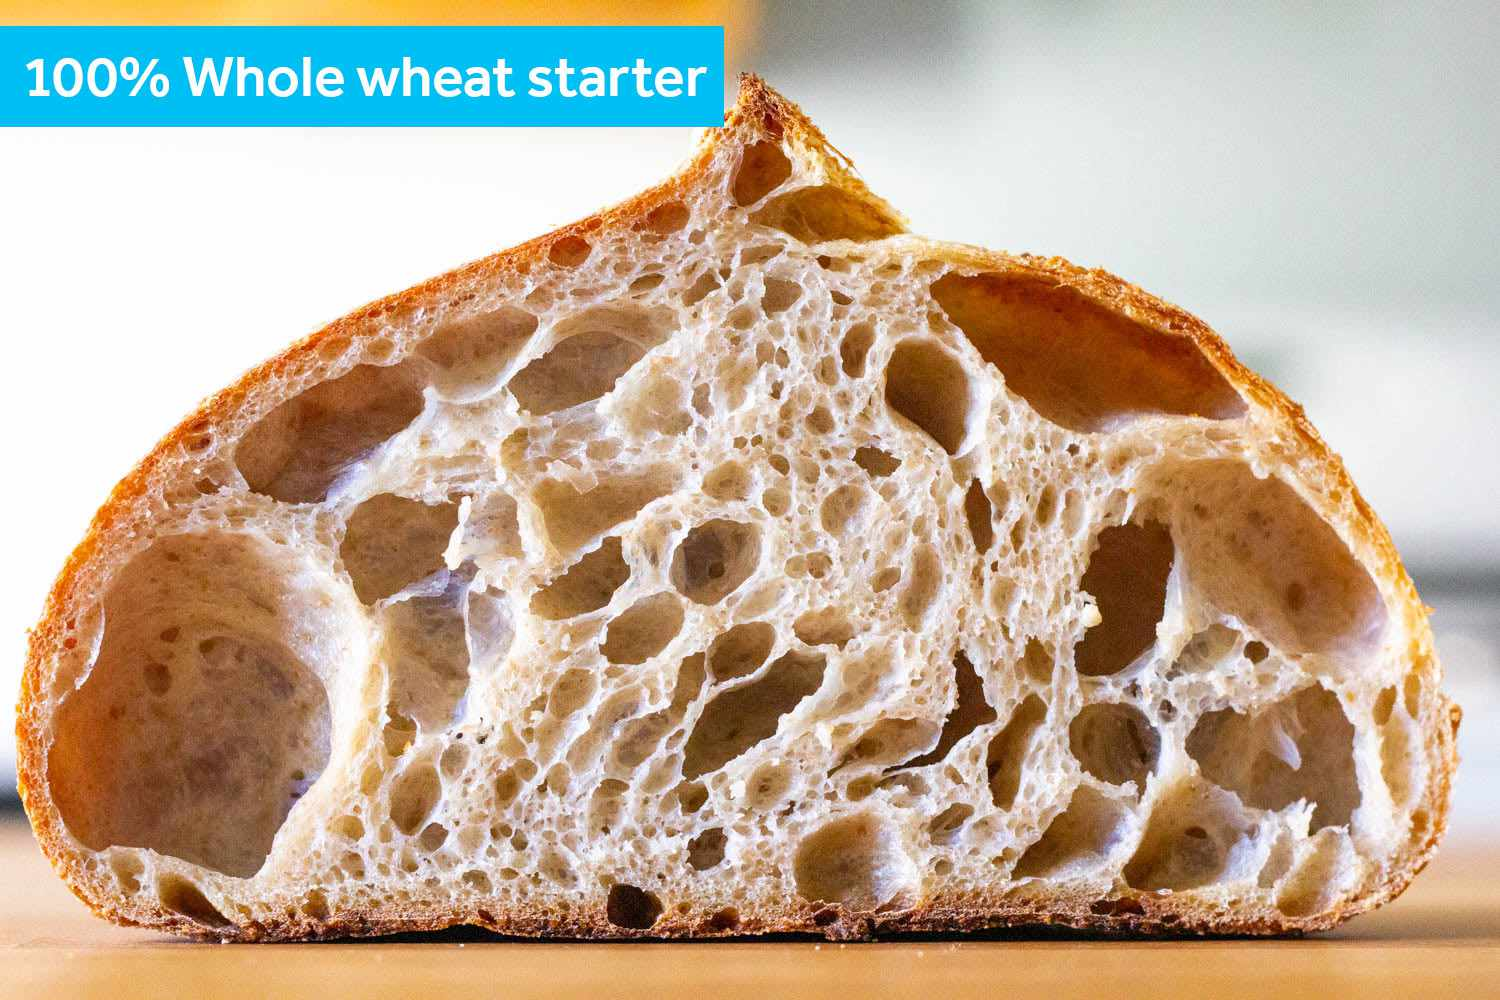 A cross section of the 100% whole wheat starter loaf